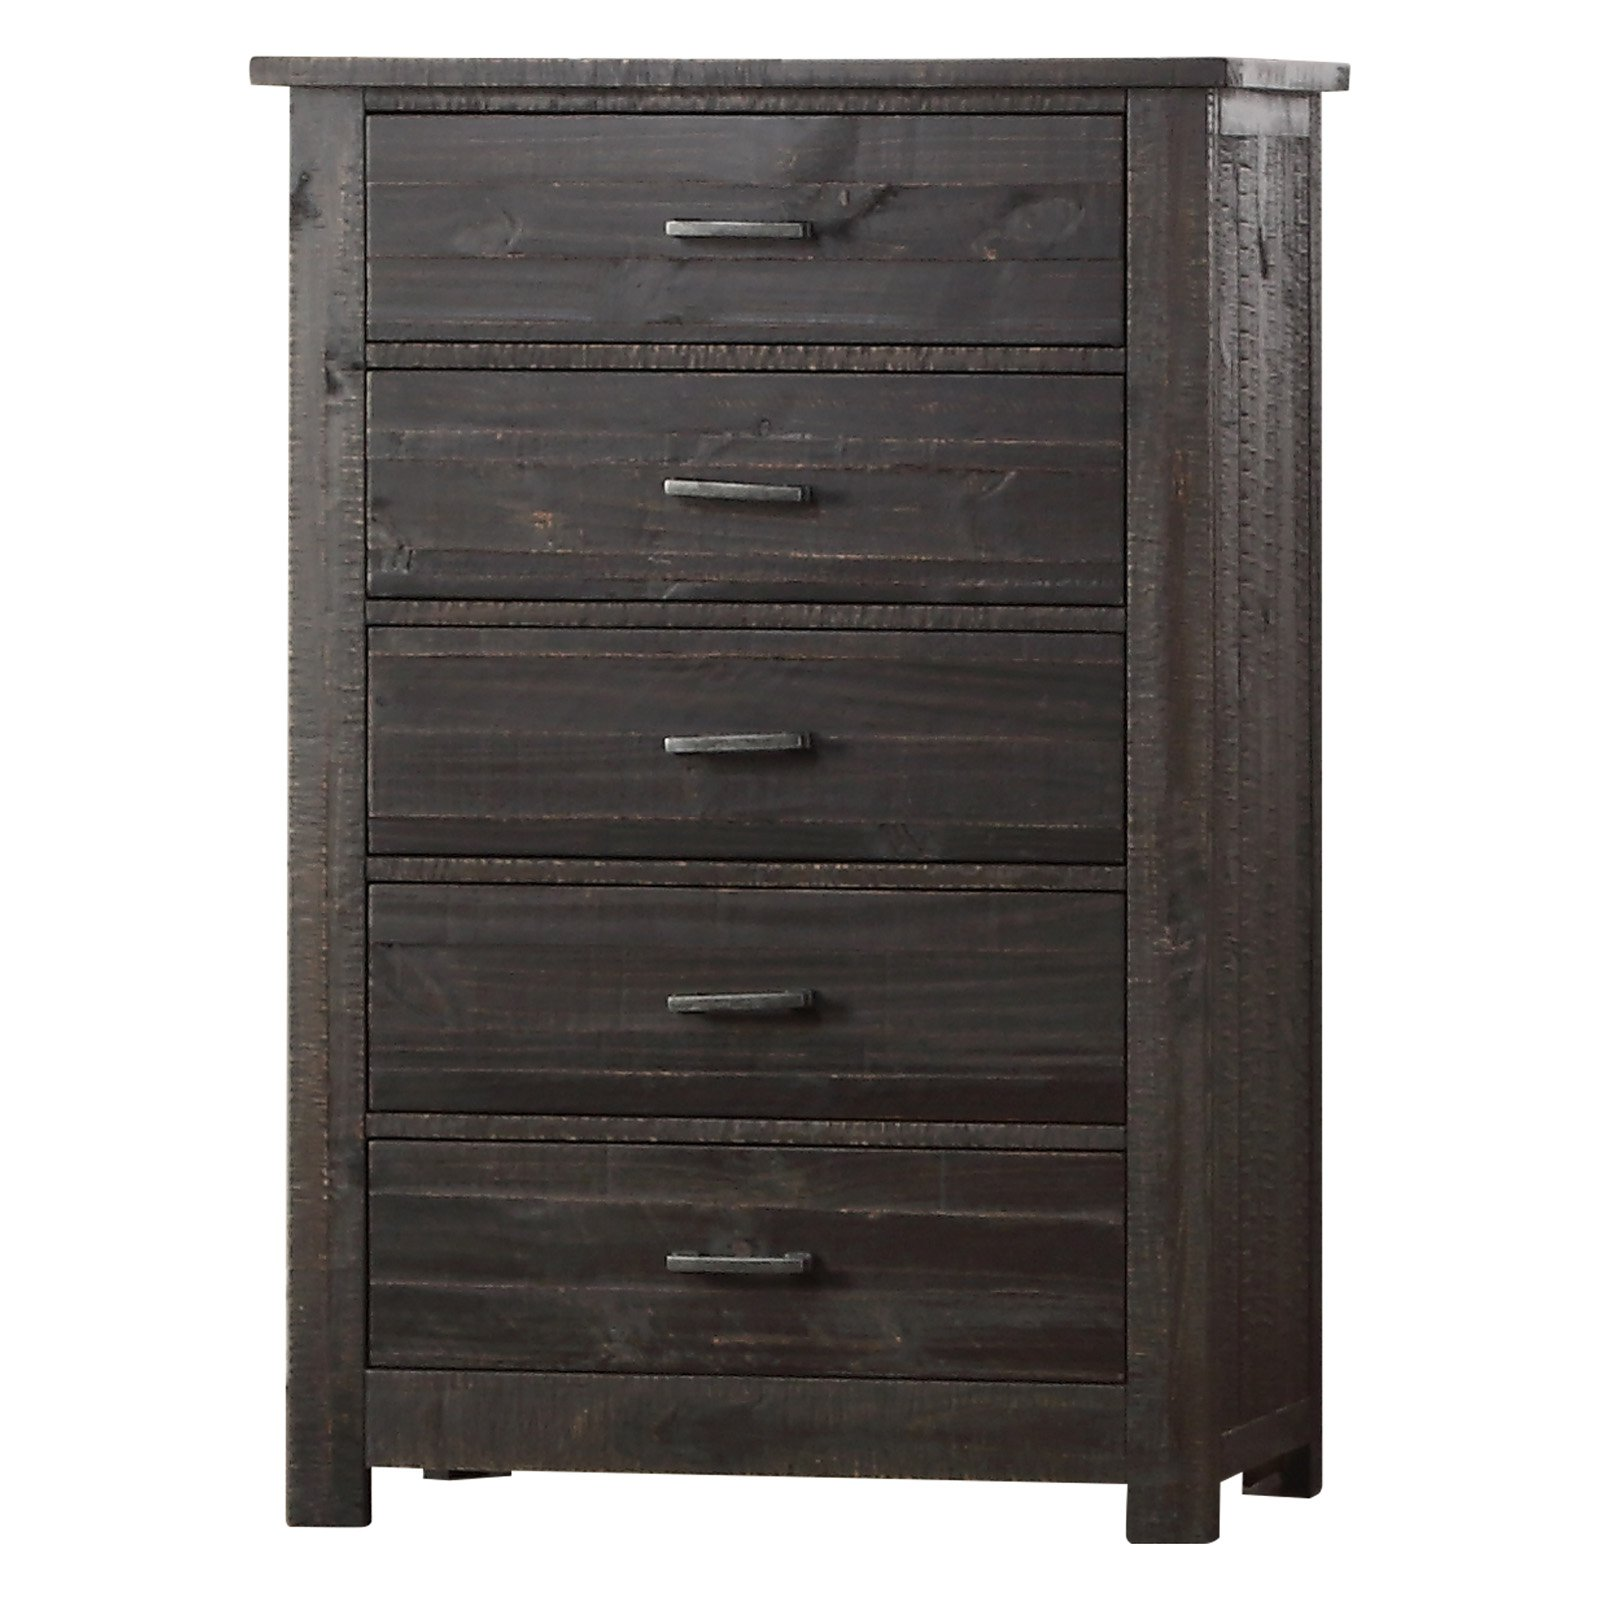 K&B Furniture Rustic Wood No Tool Assembly Bedroom Chest